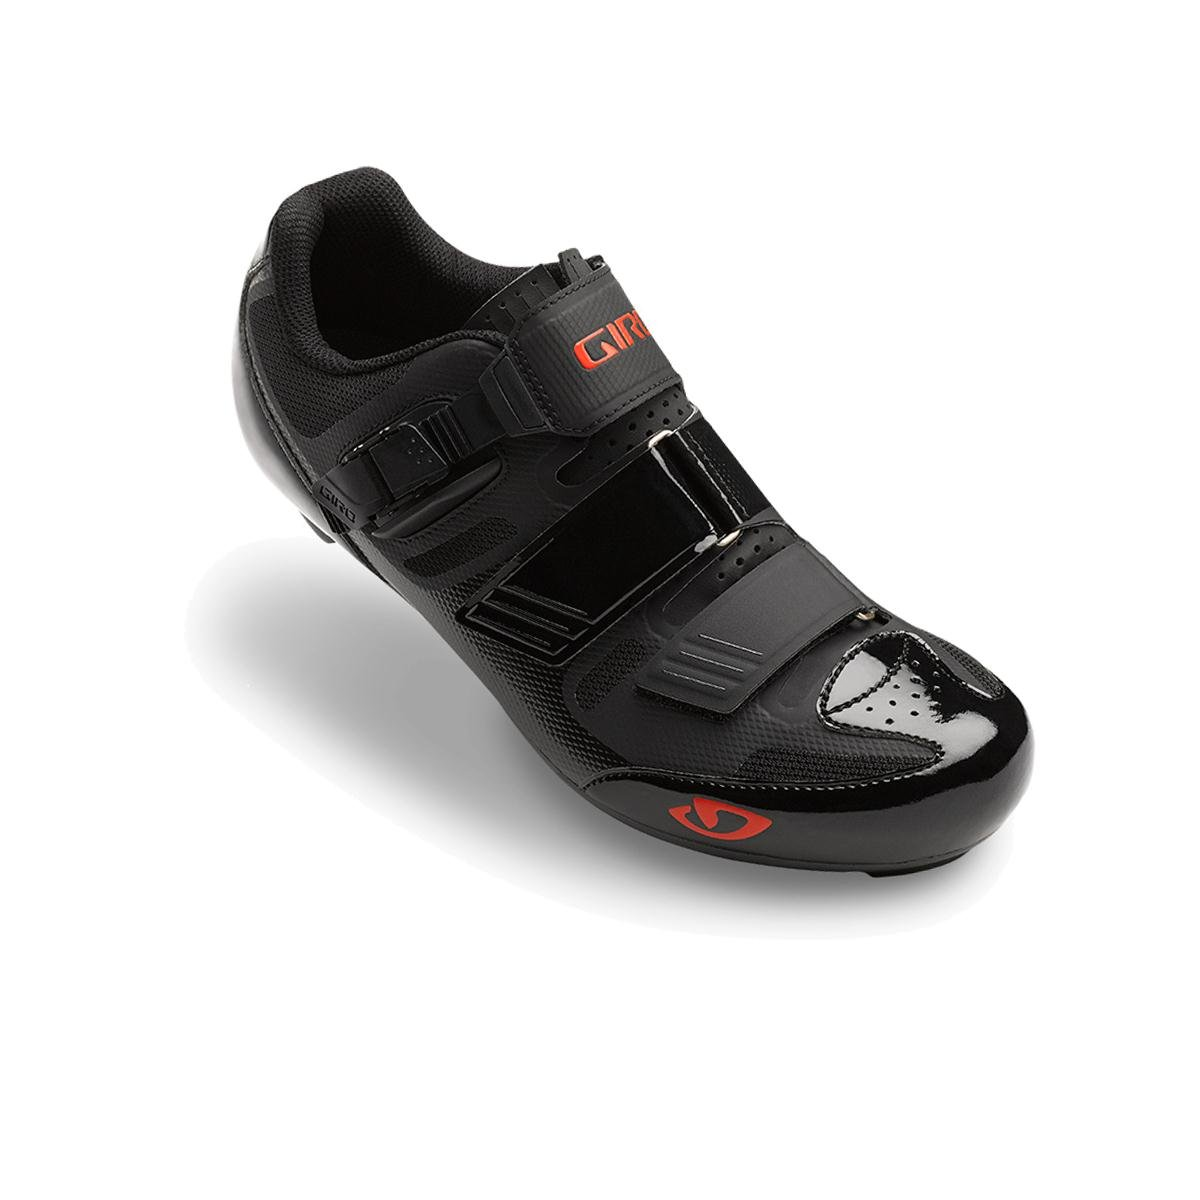 Giro Apeckx II HV Cycling Shoes Mens